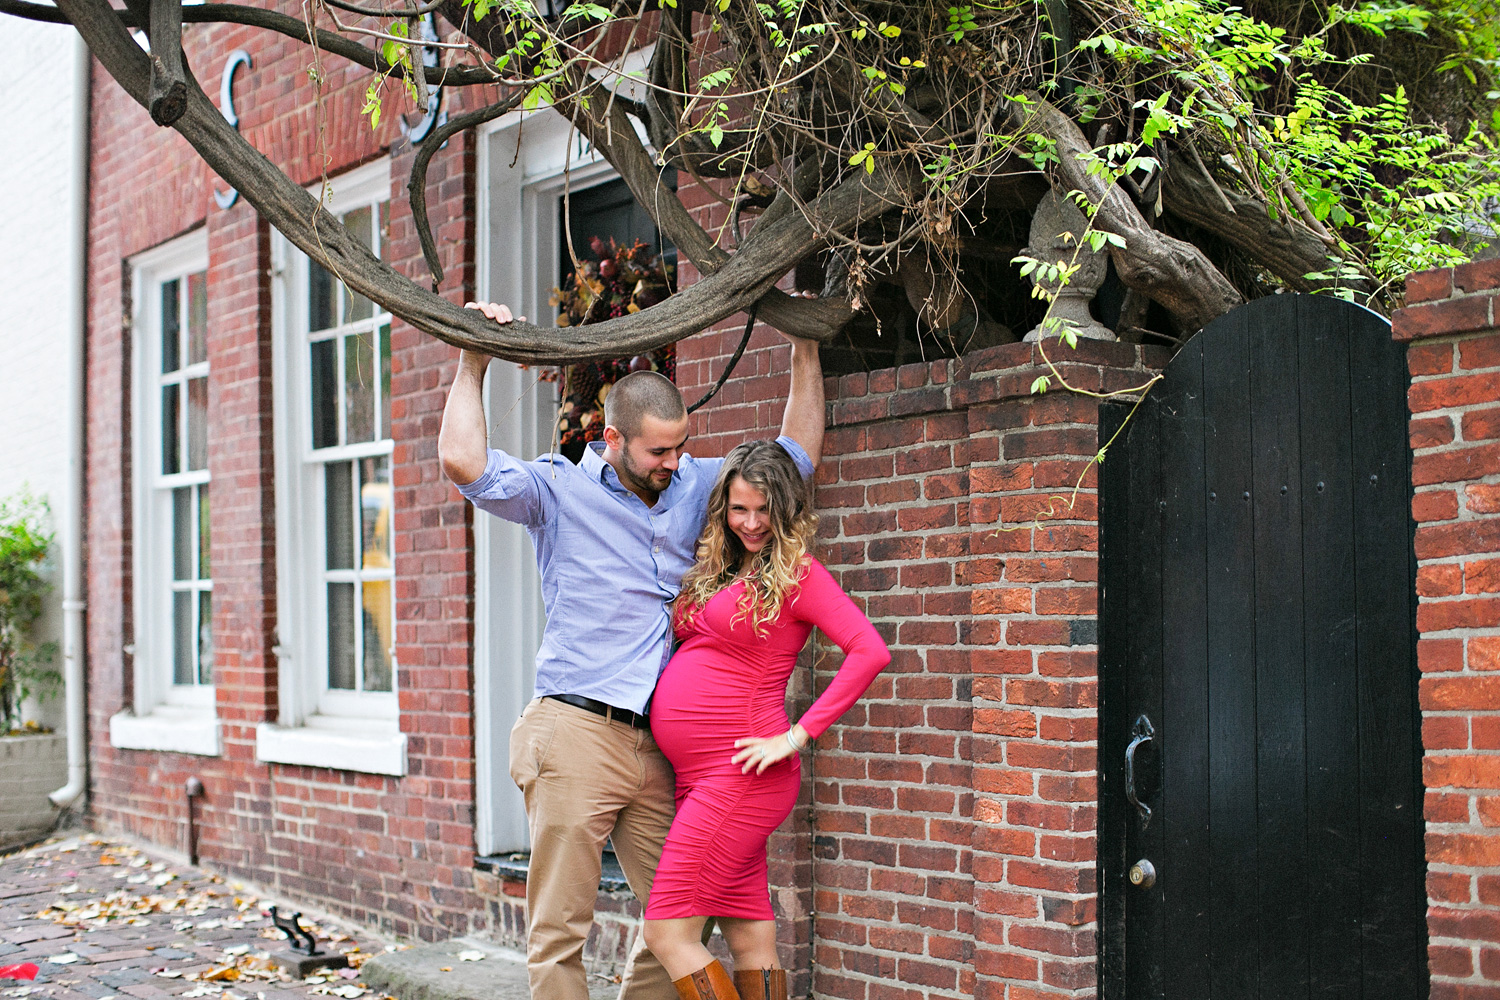 517-old-town-alexandria-maternity-photography.jpg